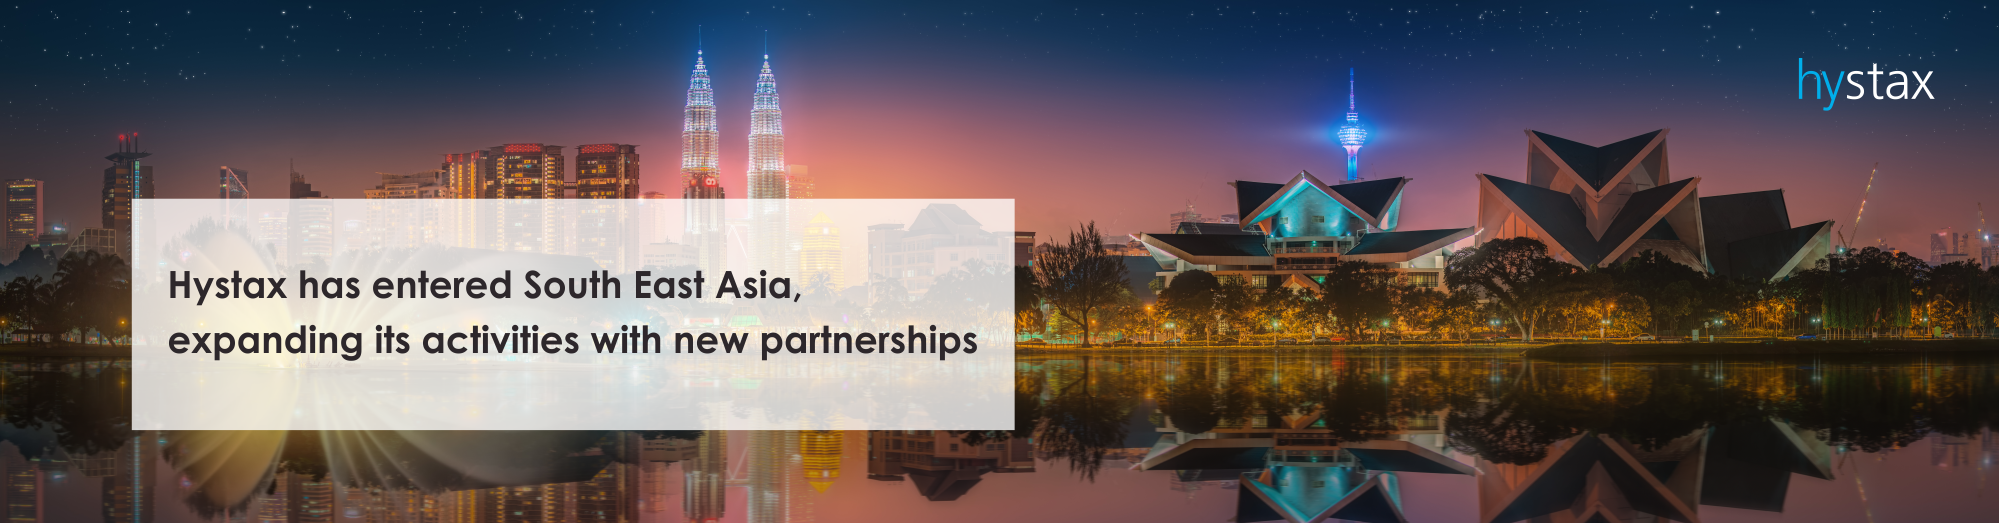 Hystax-partnership-South East Asia